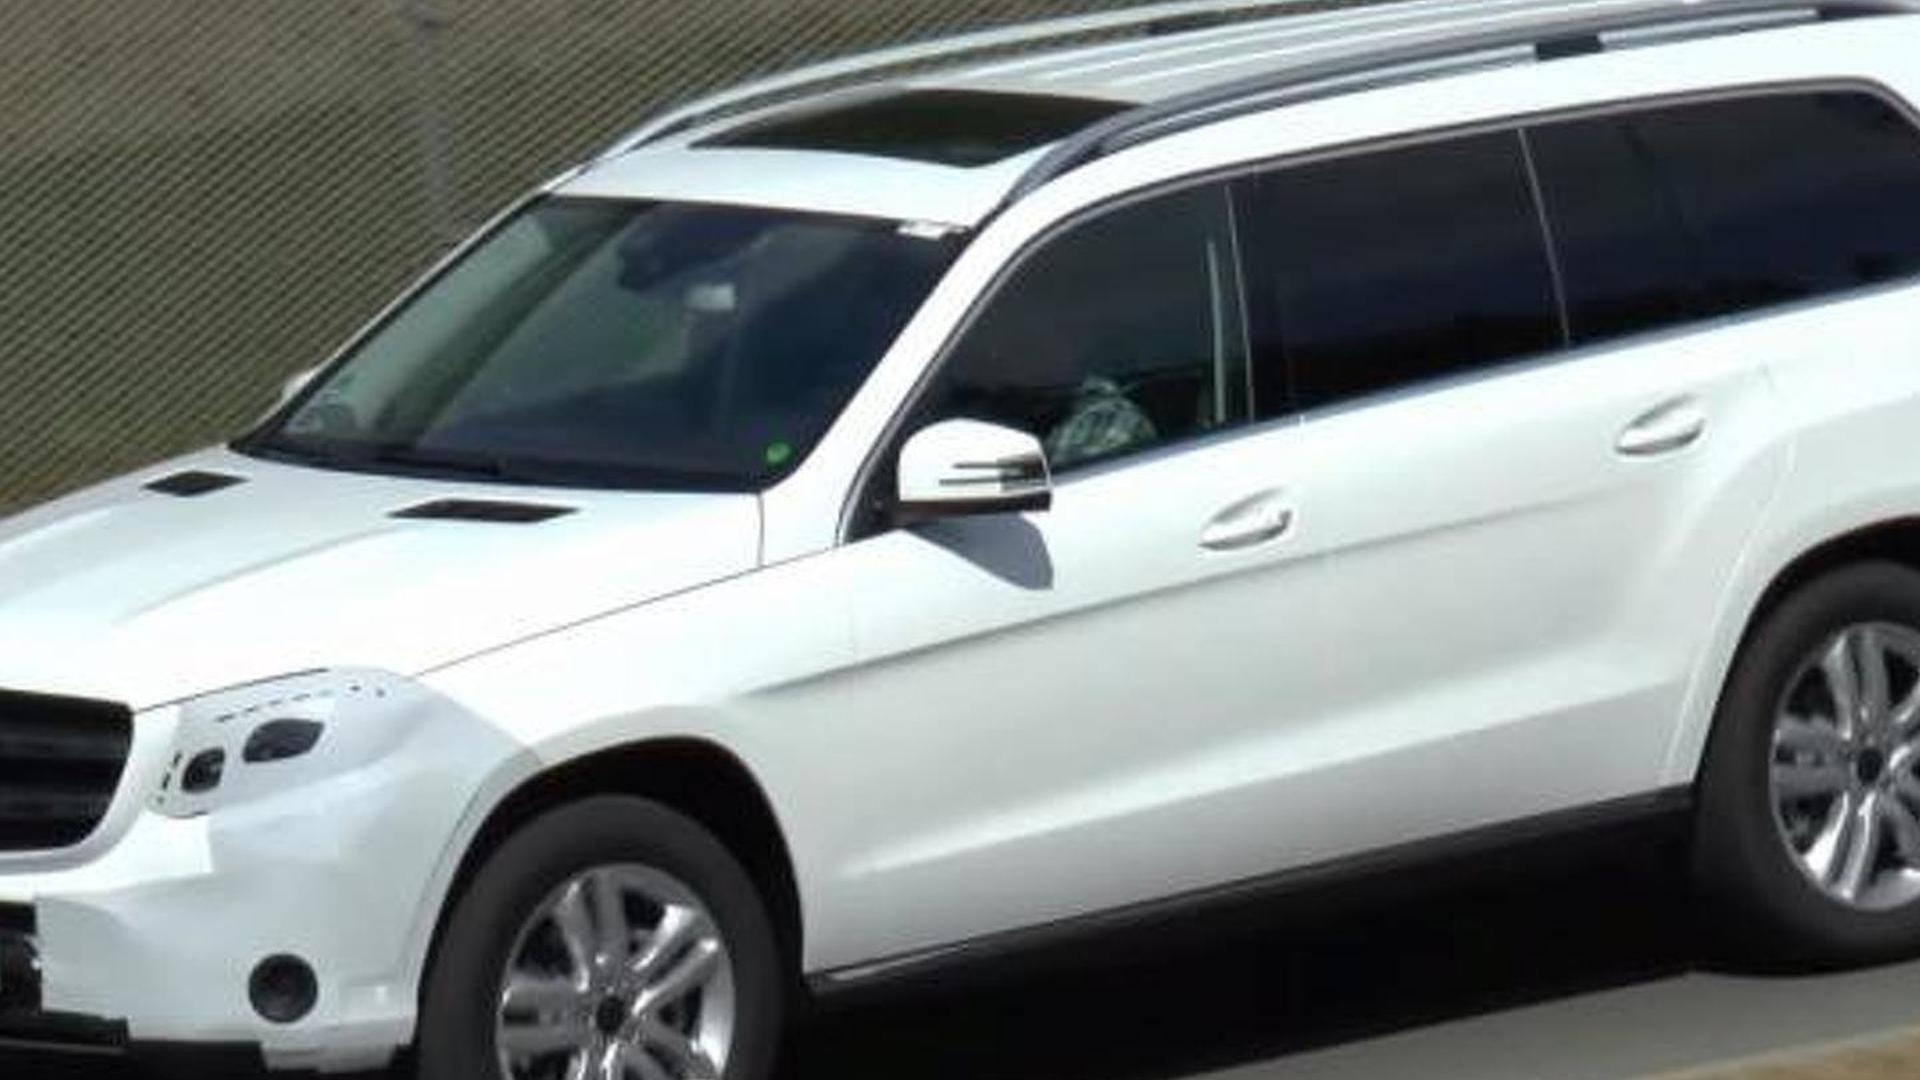 Facelifted Mercedes-Benz GL (renamed GLS) spied in motion [video]